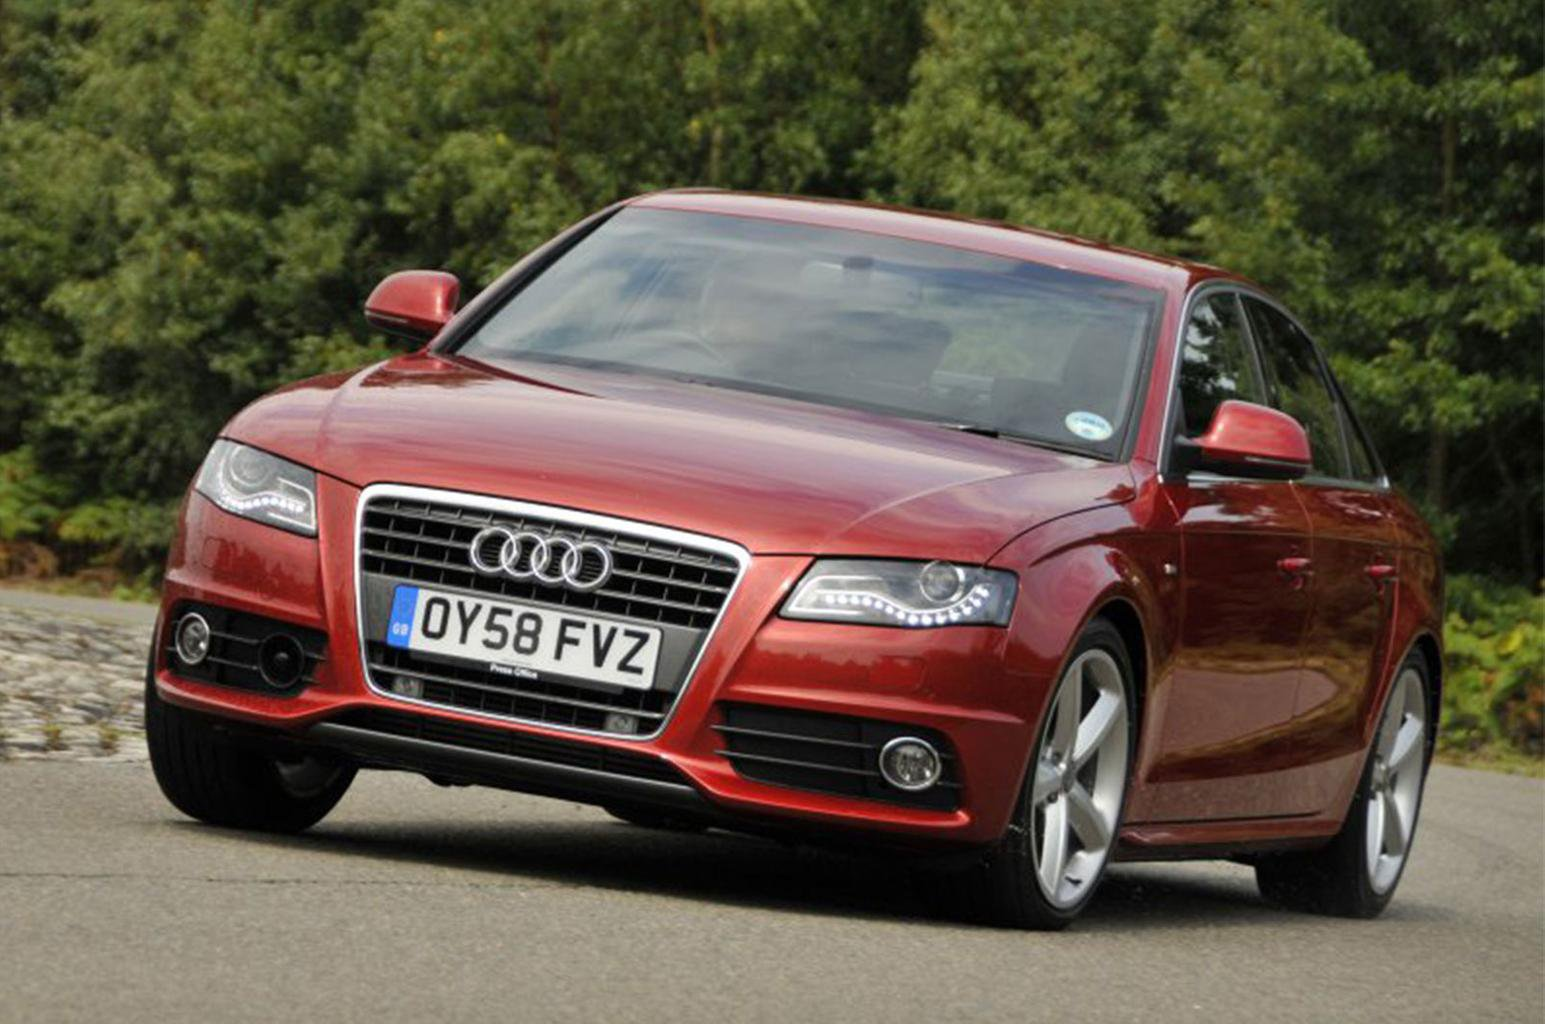 Used Audi A4 saloon